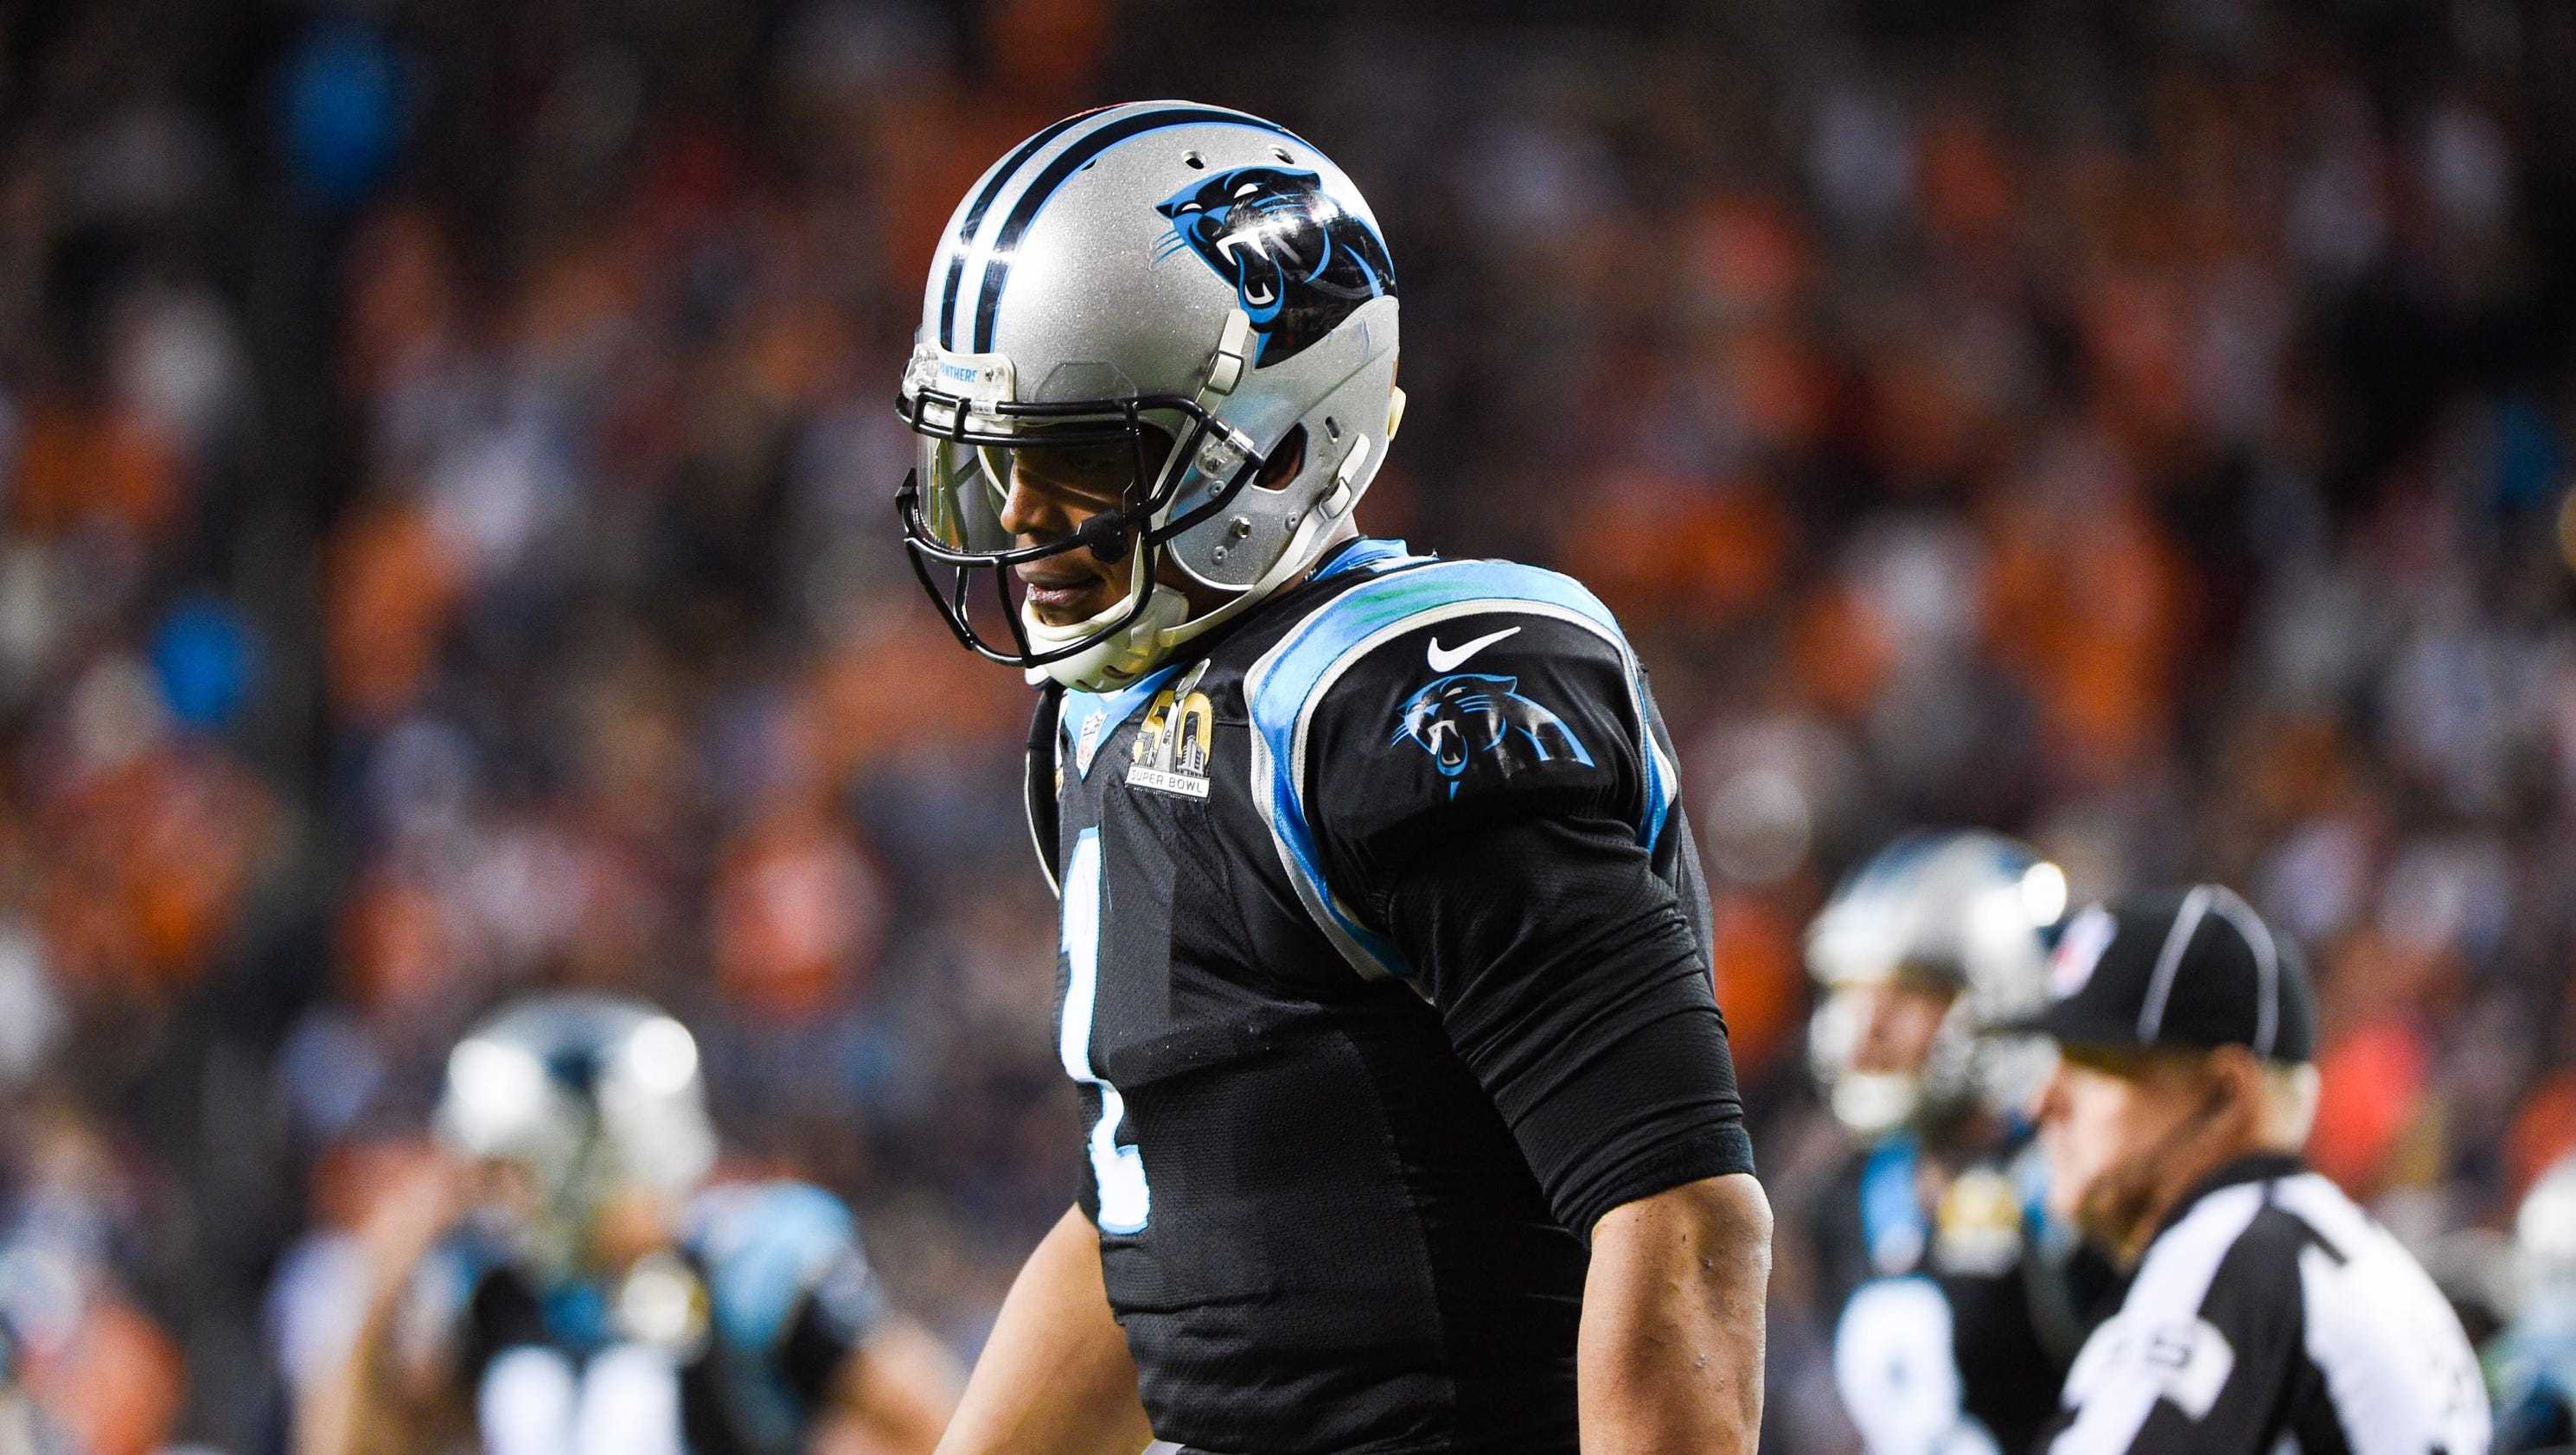 635906155055833701-usp-nfl-super-bowl-50-carolina-panthers-vs-denver-79503686